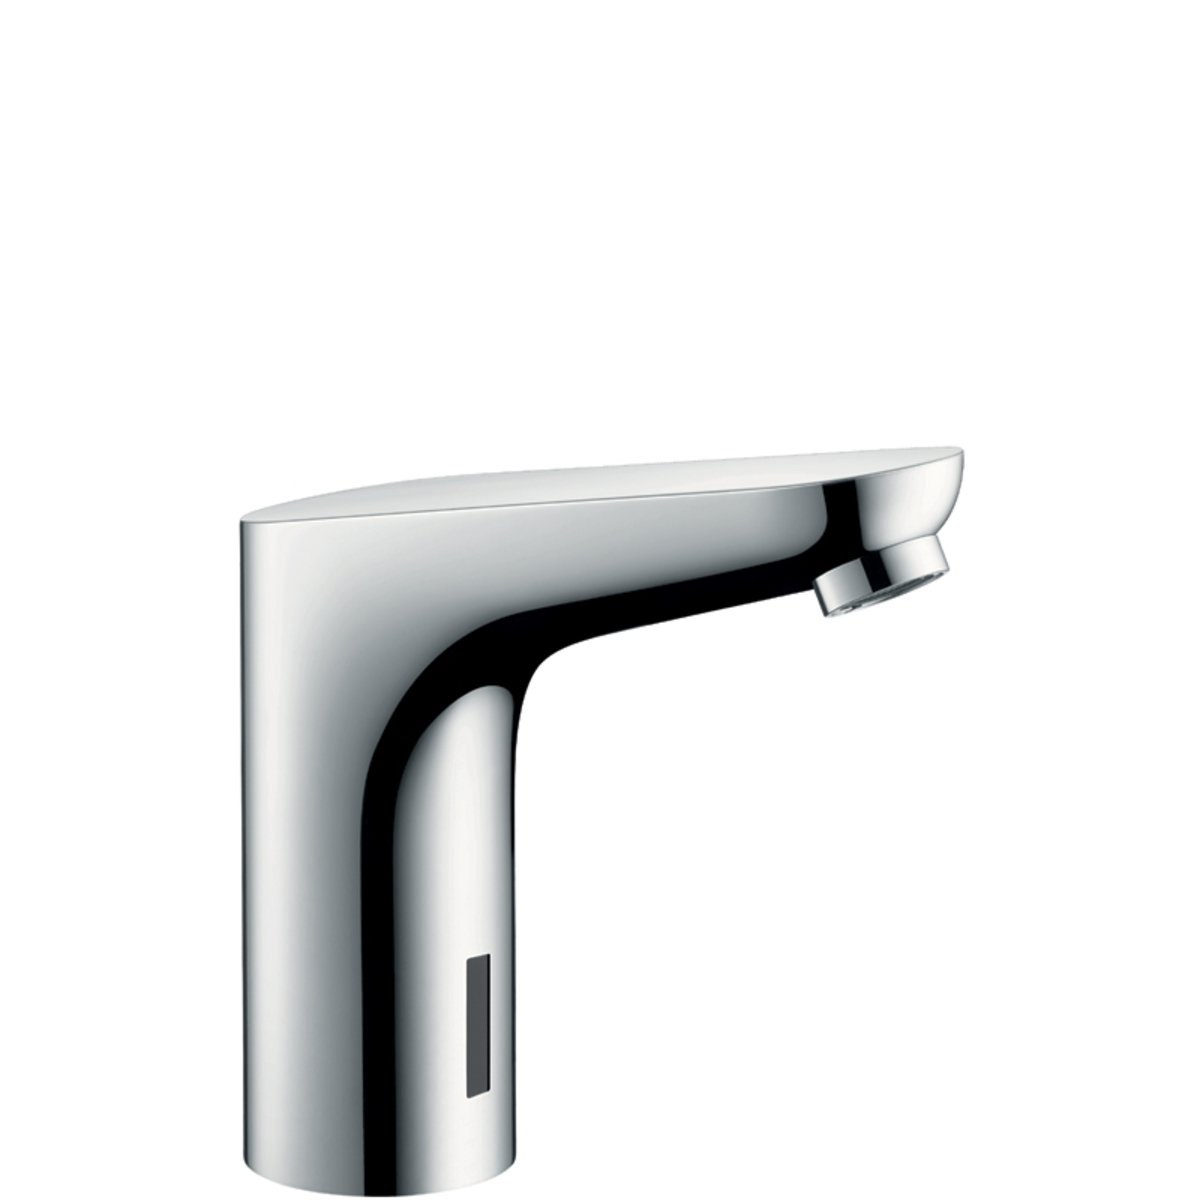 hansgrohe focus e2 robinet pour lavabo electronique avec sensor batterie pour de l 39 eau froide. Black Bedroom Furniture Sets. Home Design Ideas